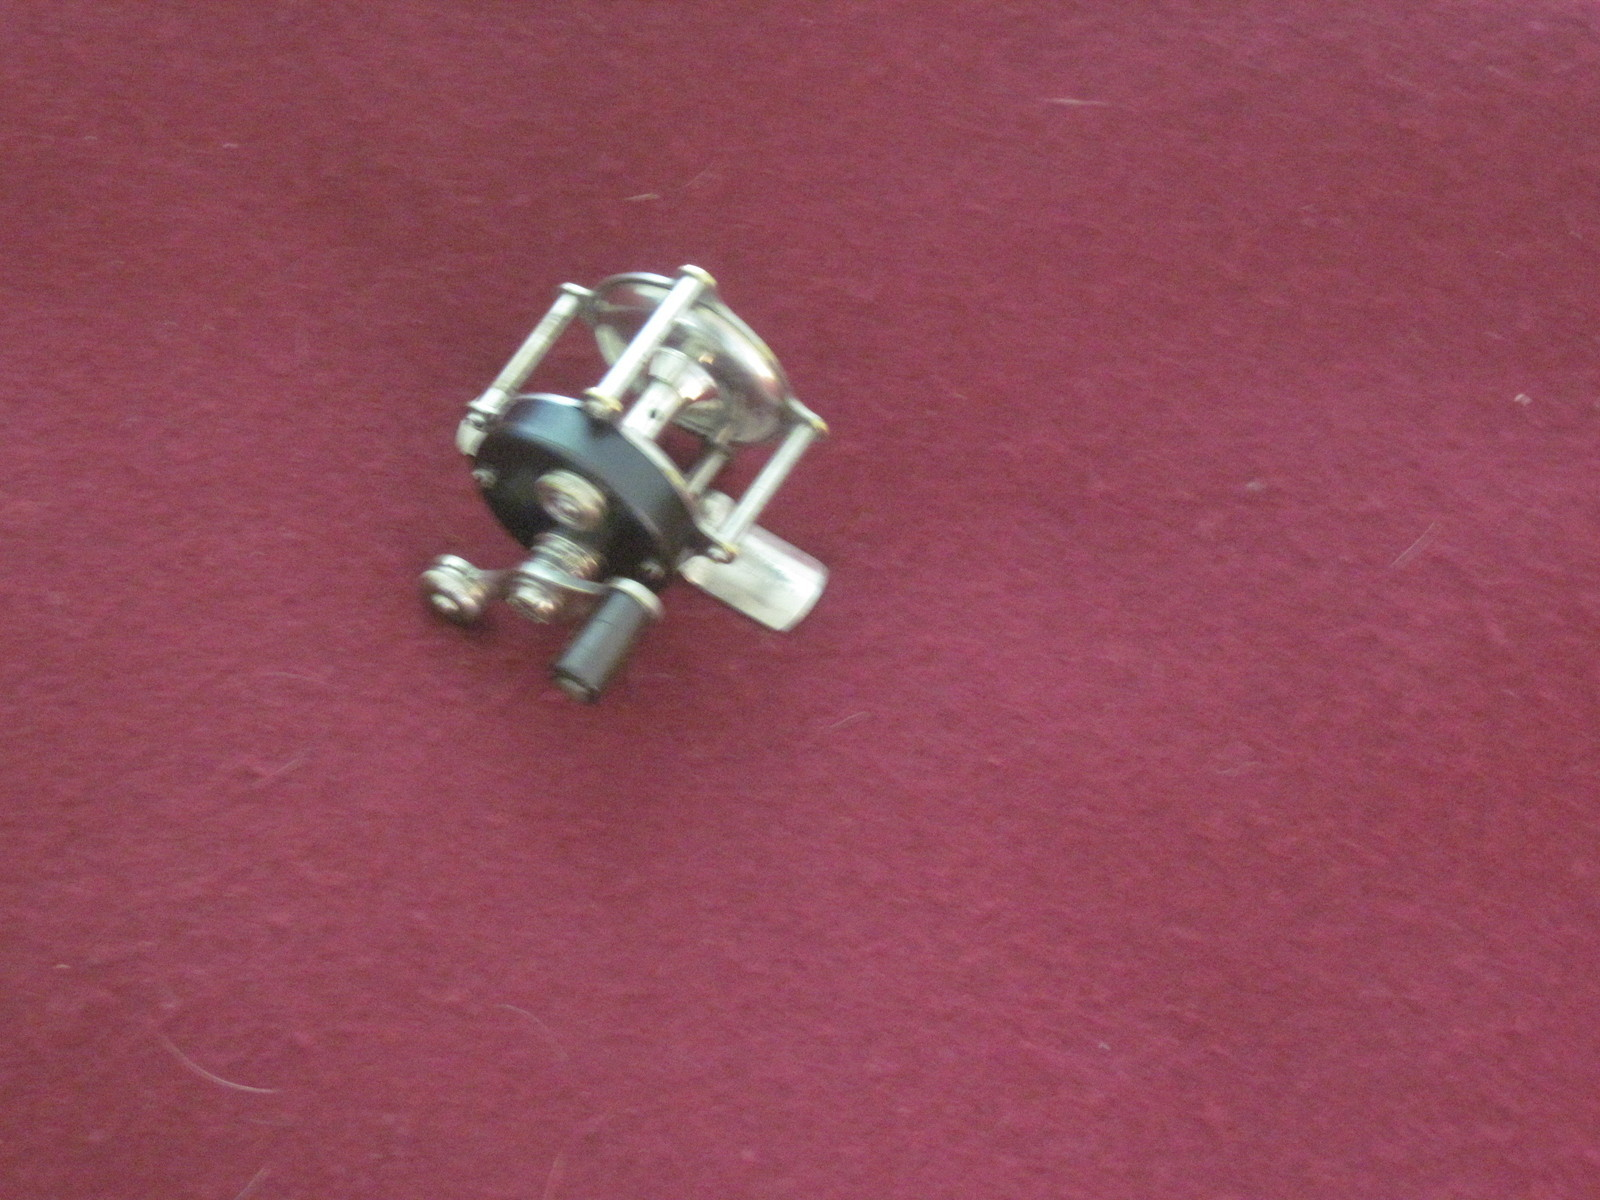 SMALL EDWARD VOM HOFE OR PENNELL REEL Item 261235326300 $76.00.JPG